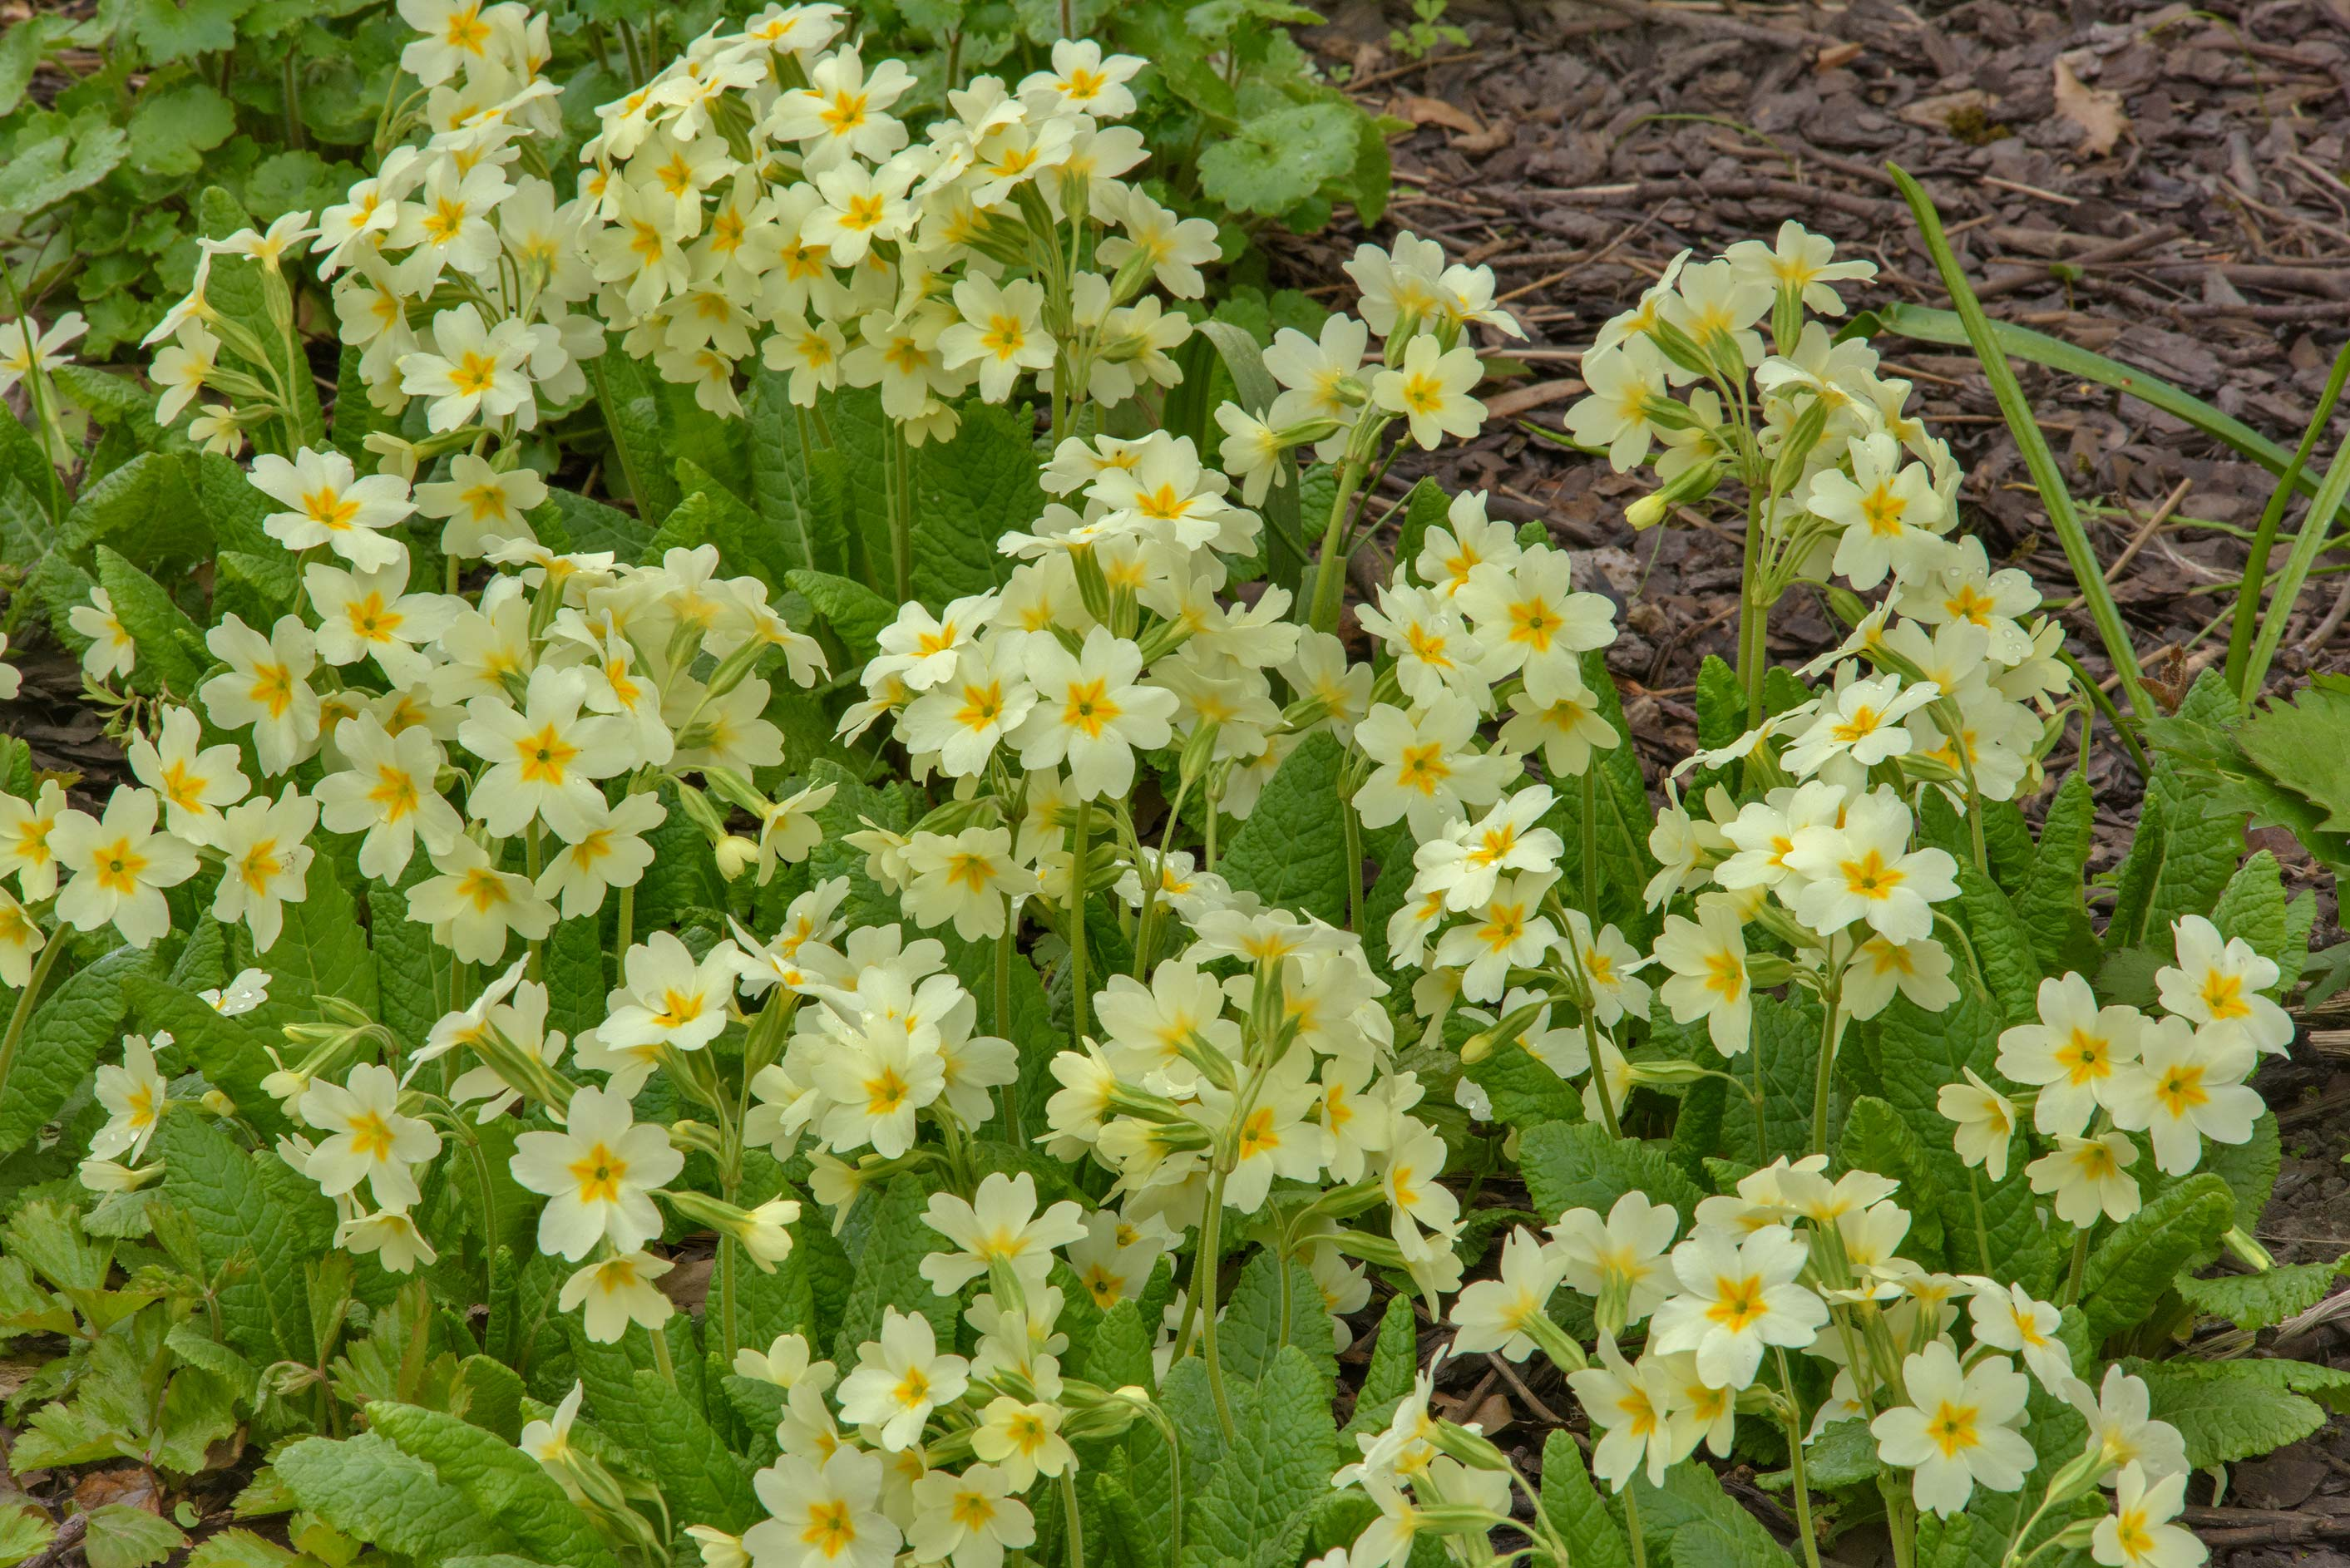 Yellow primula flowers in Botanic Gardens of...Institute. St.Petersburg, Russia